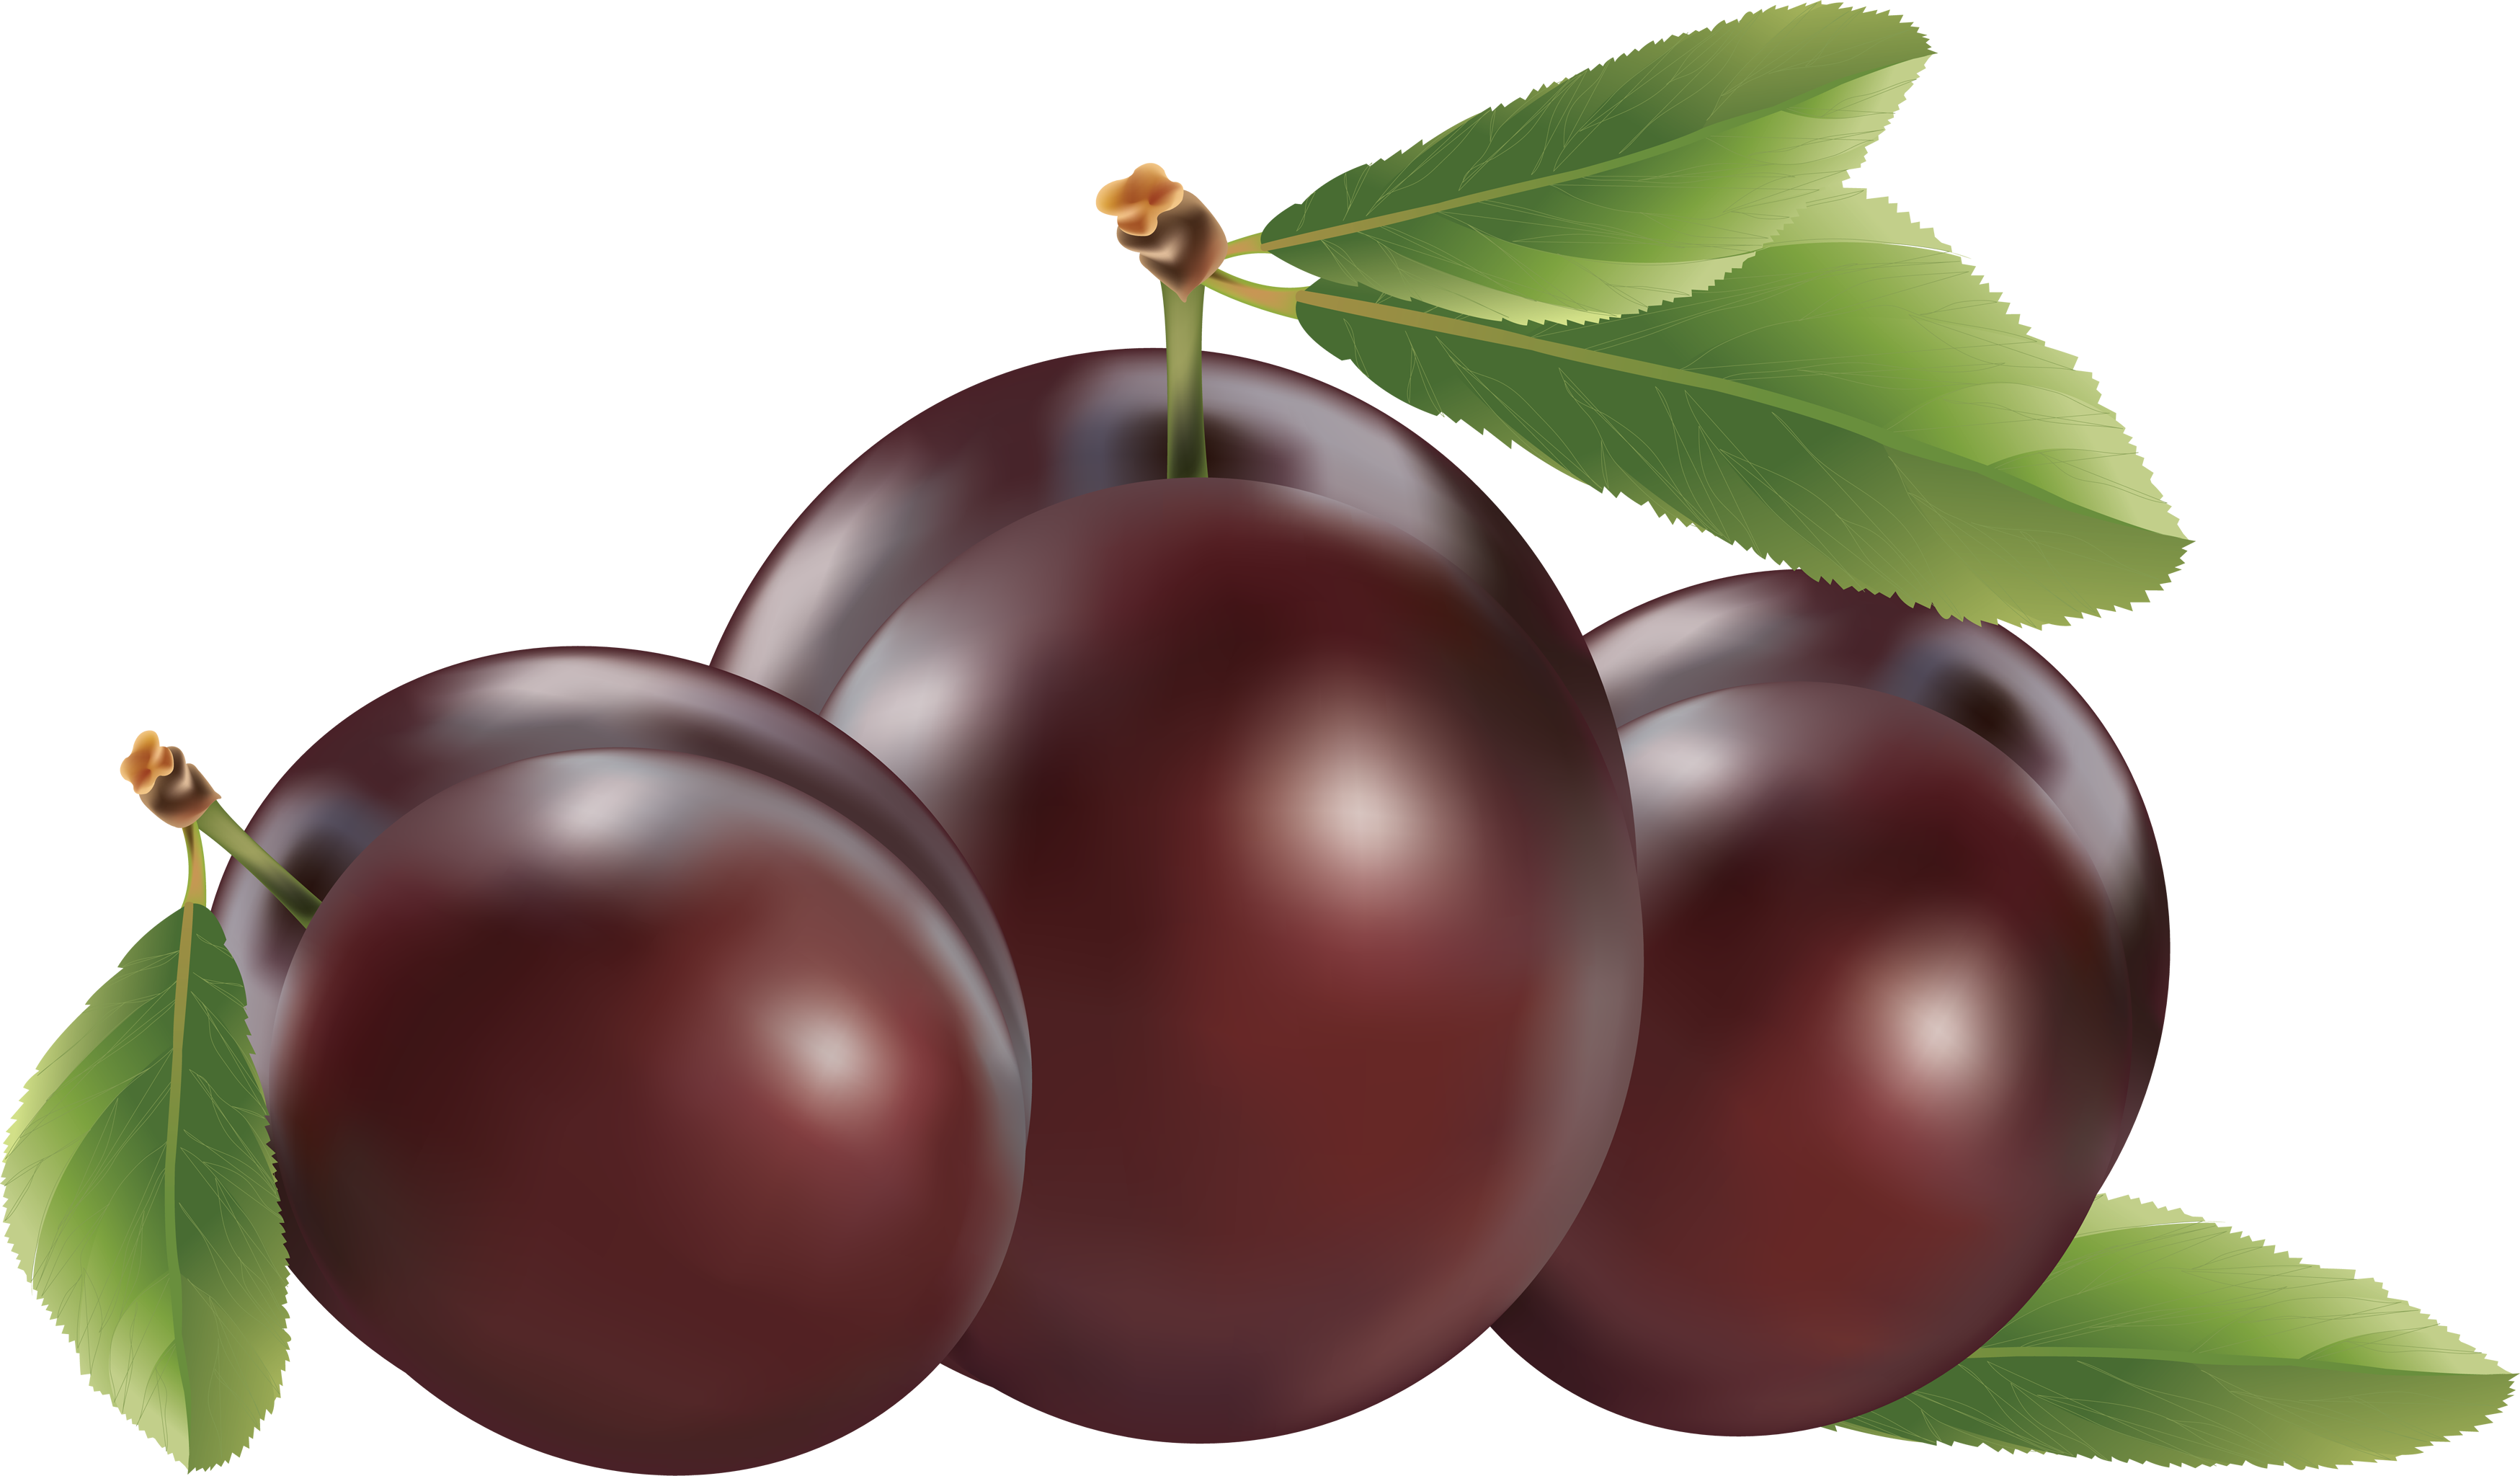 FRUIT for SLIMMING: 12 PLUMS DAILY MAKES MIRACLE FOR a slim figure.